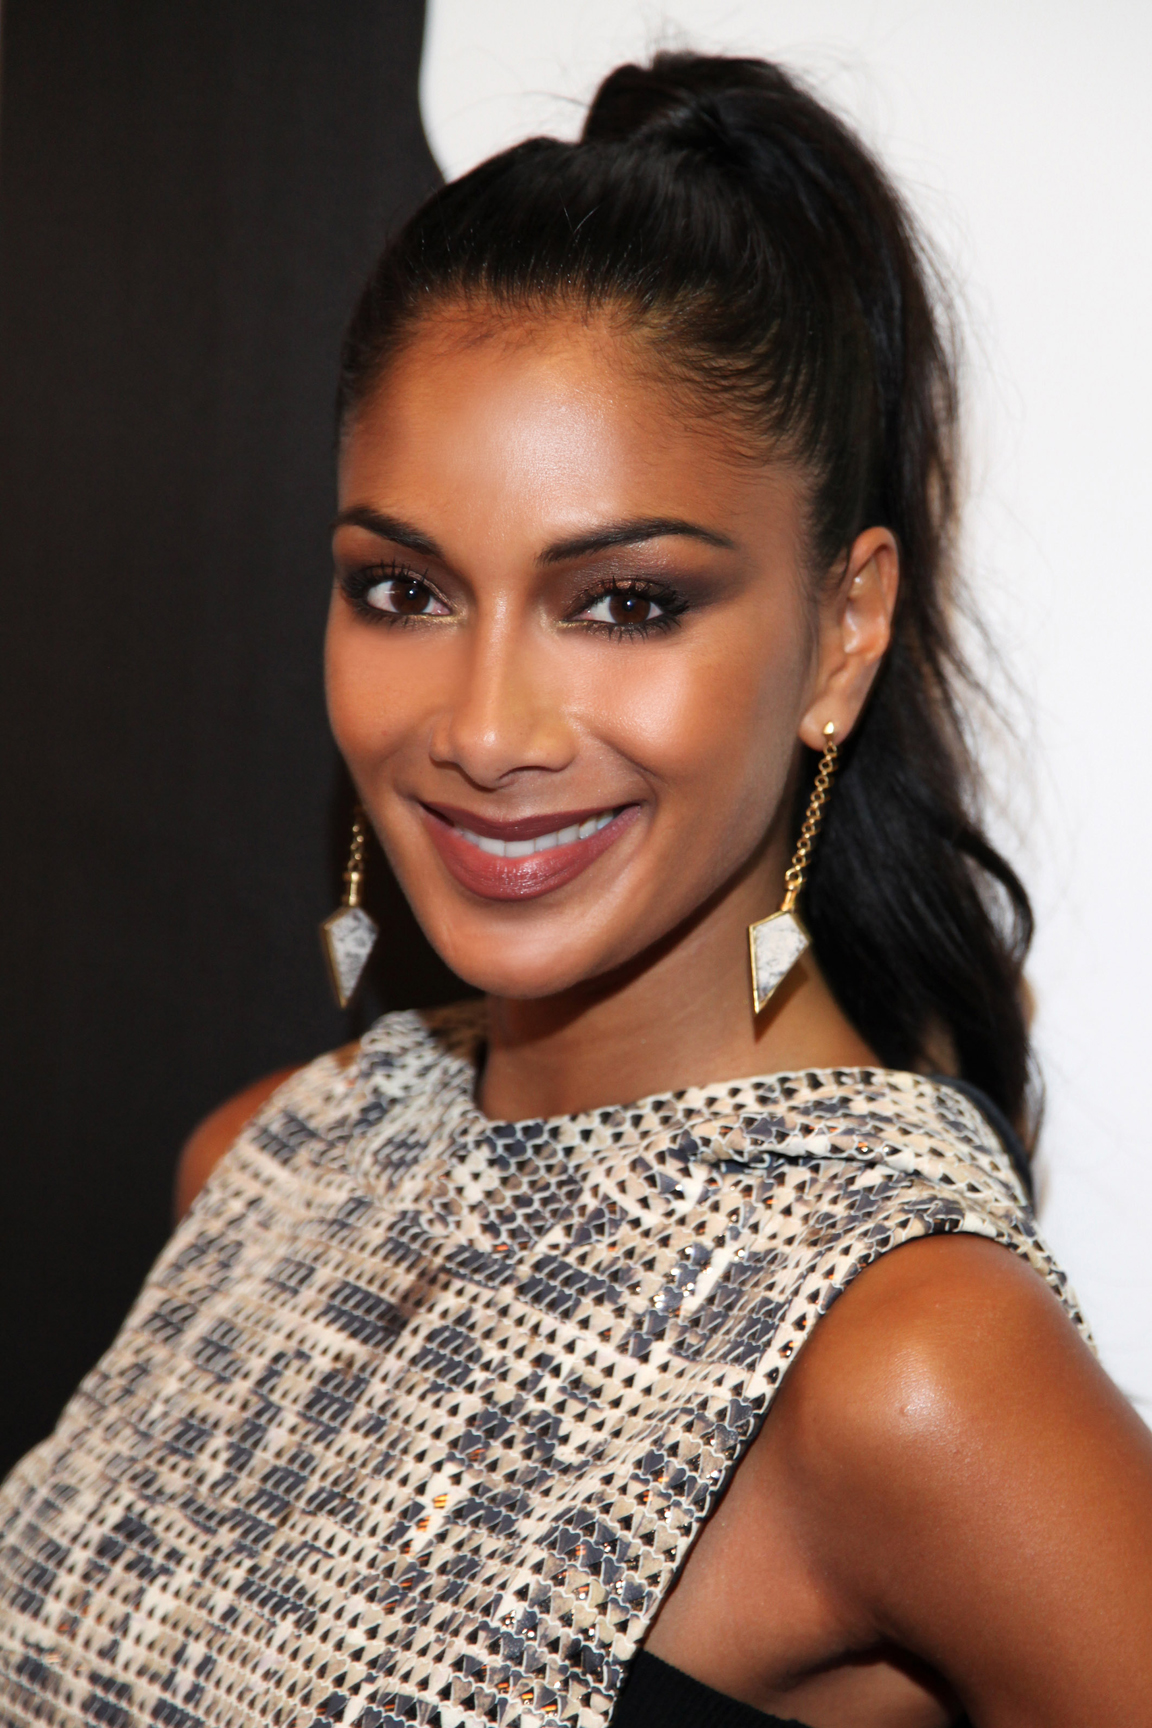 Description Nicole Scherzinger 2012 jpgNicole Scherzinger